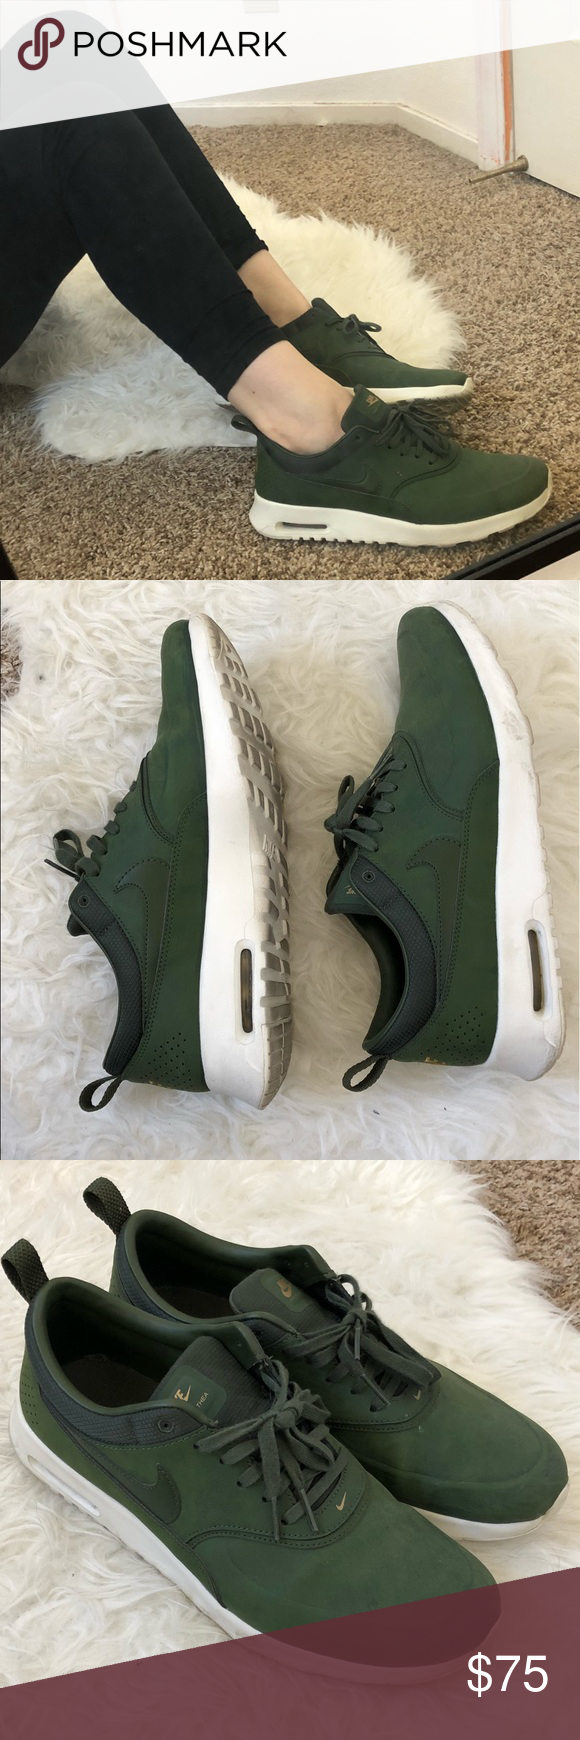 timeless design 471f1 e1f20 Hunter green Nike air max Thea Lightly worn, green Nike air max thea s with  gold embroidery. Nike Shoes Sneakers